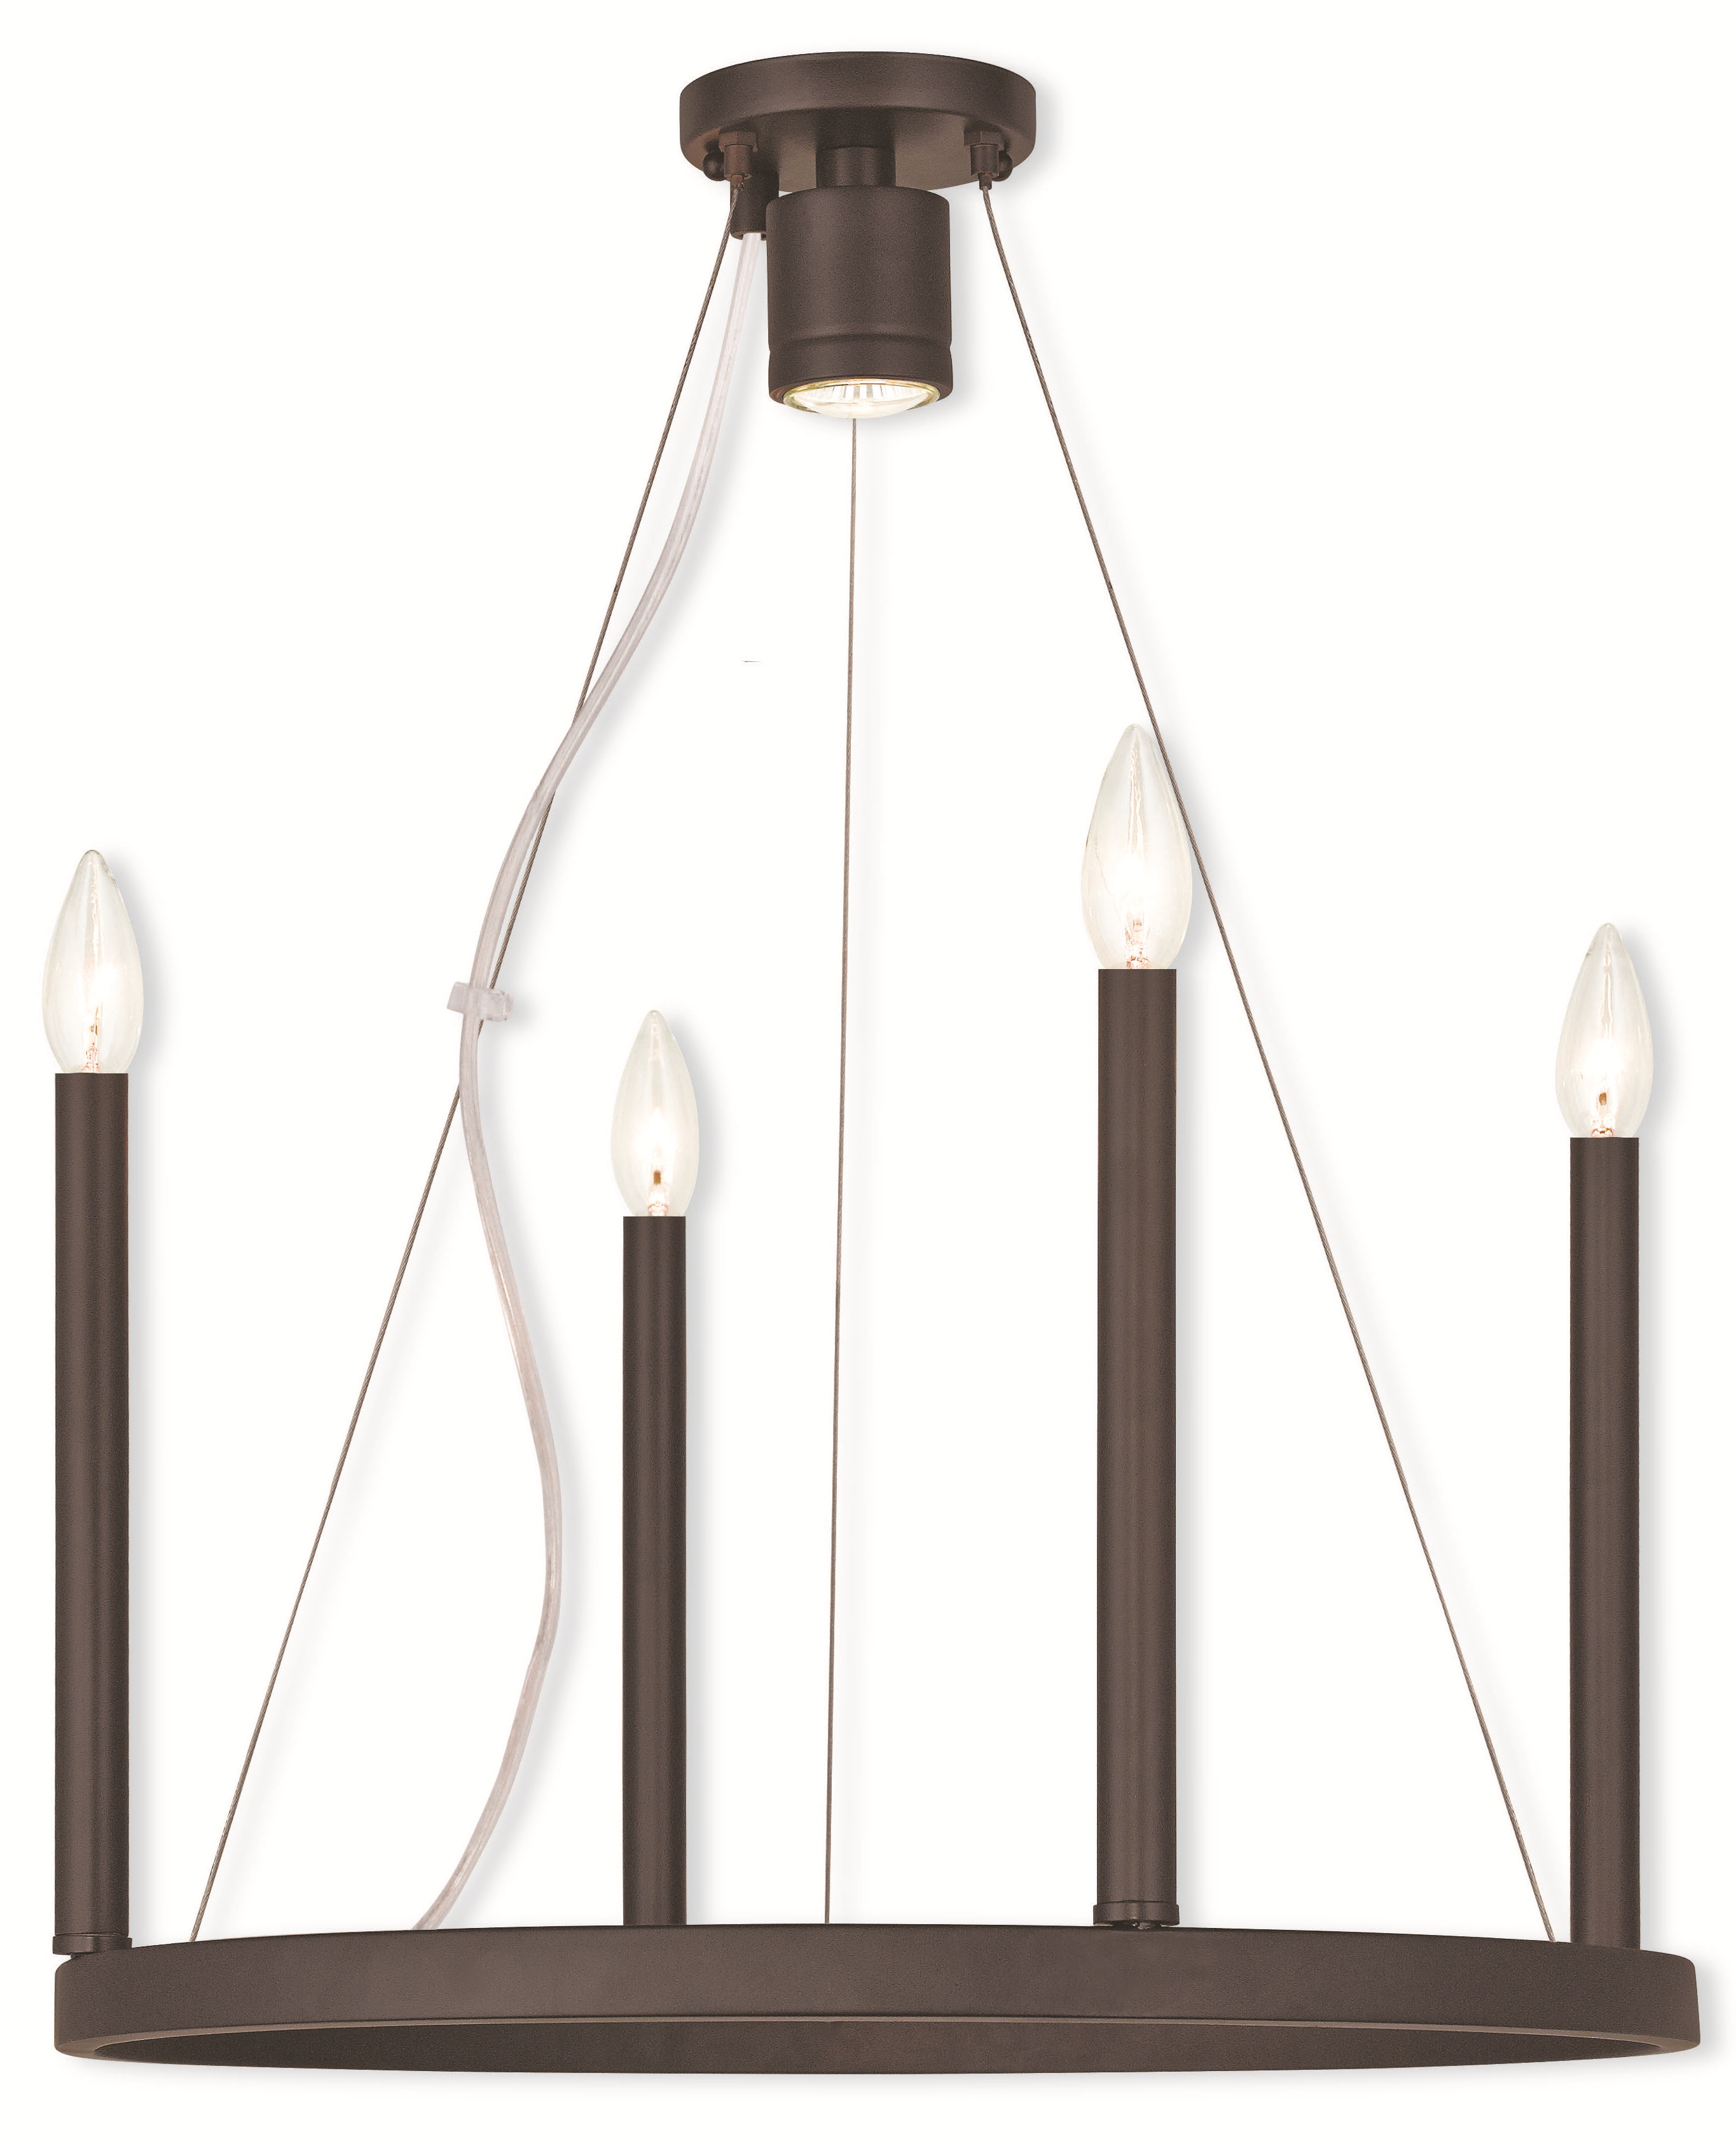 charming Livex Lighting 40244 07 Chandelier from the alpine collection for home lighting ideas